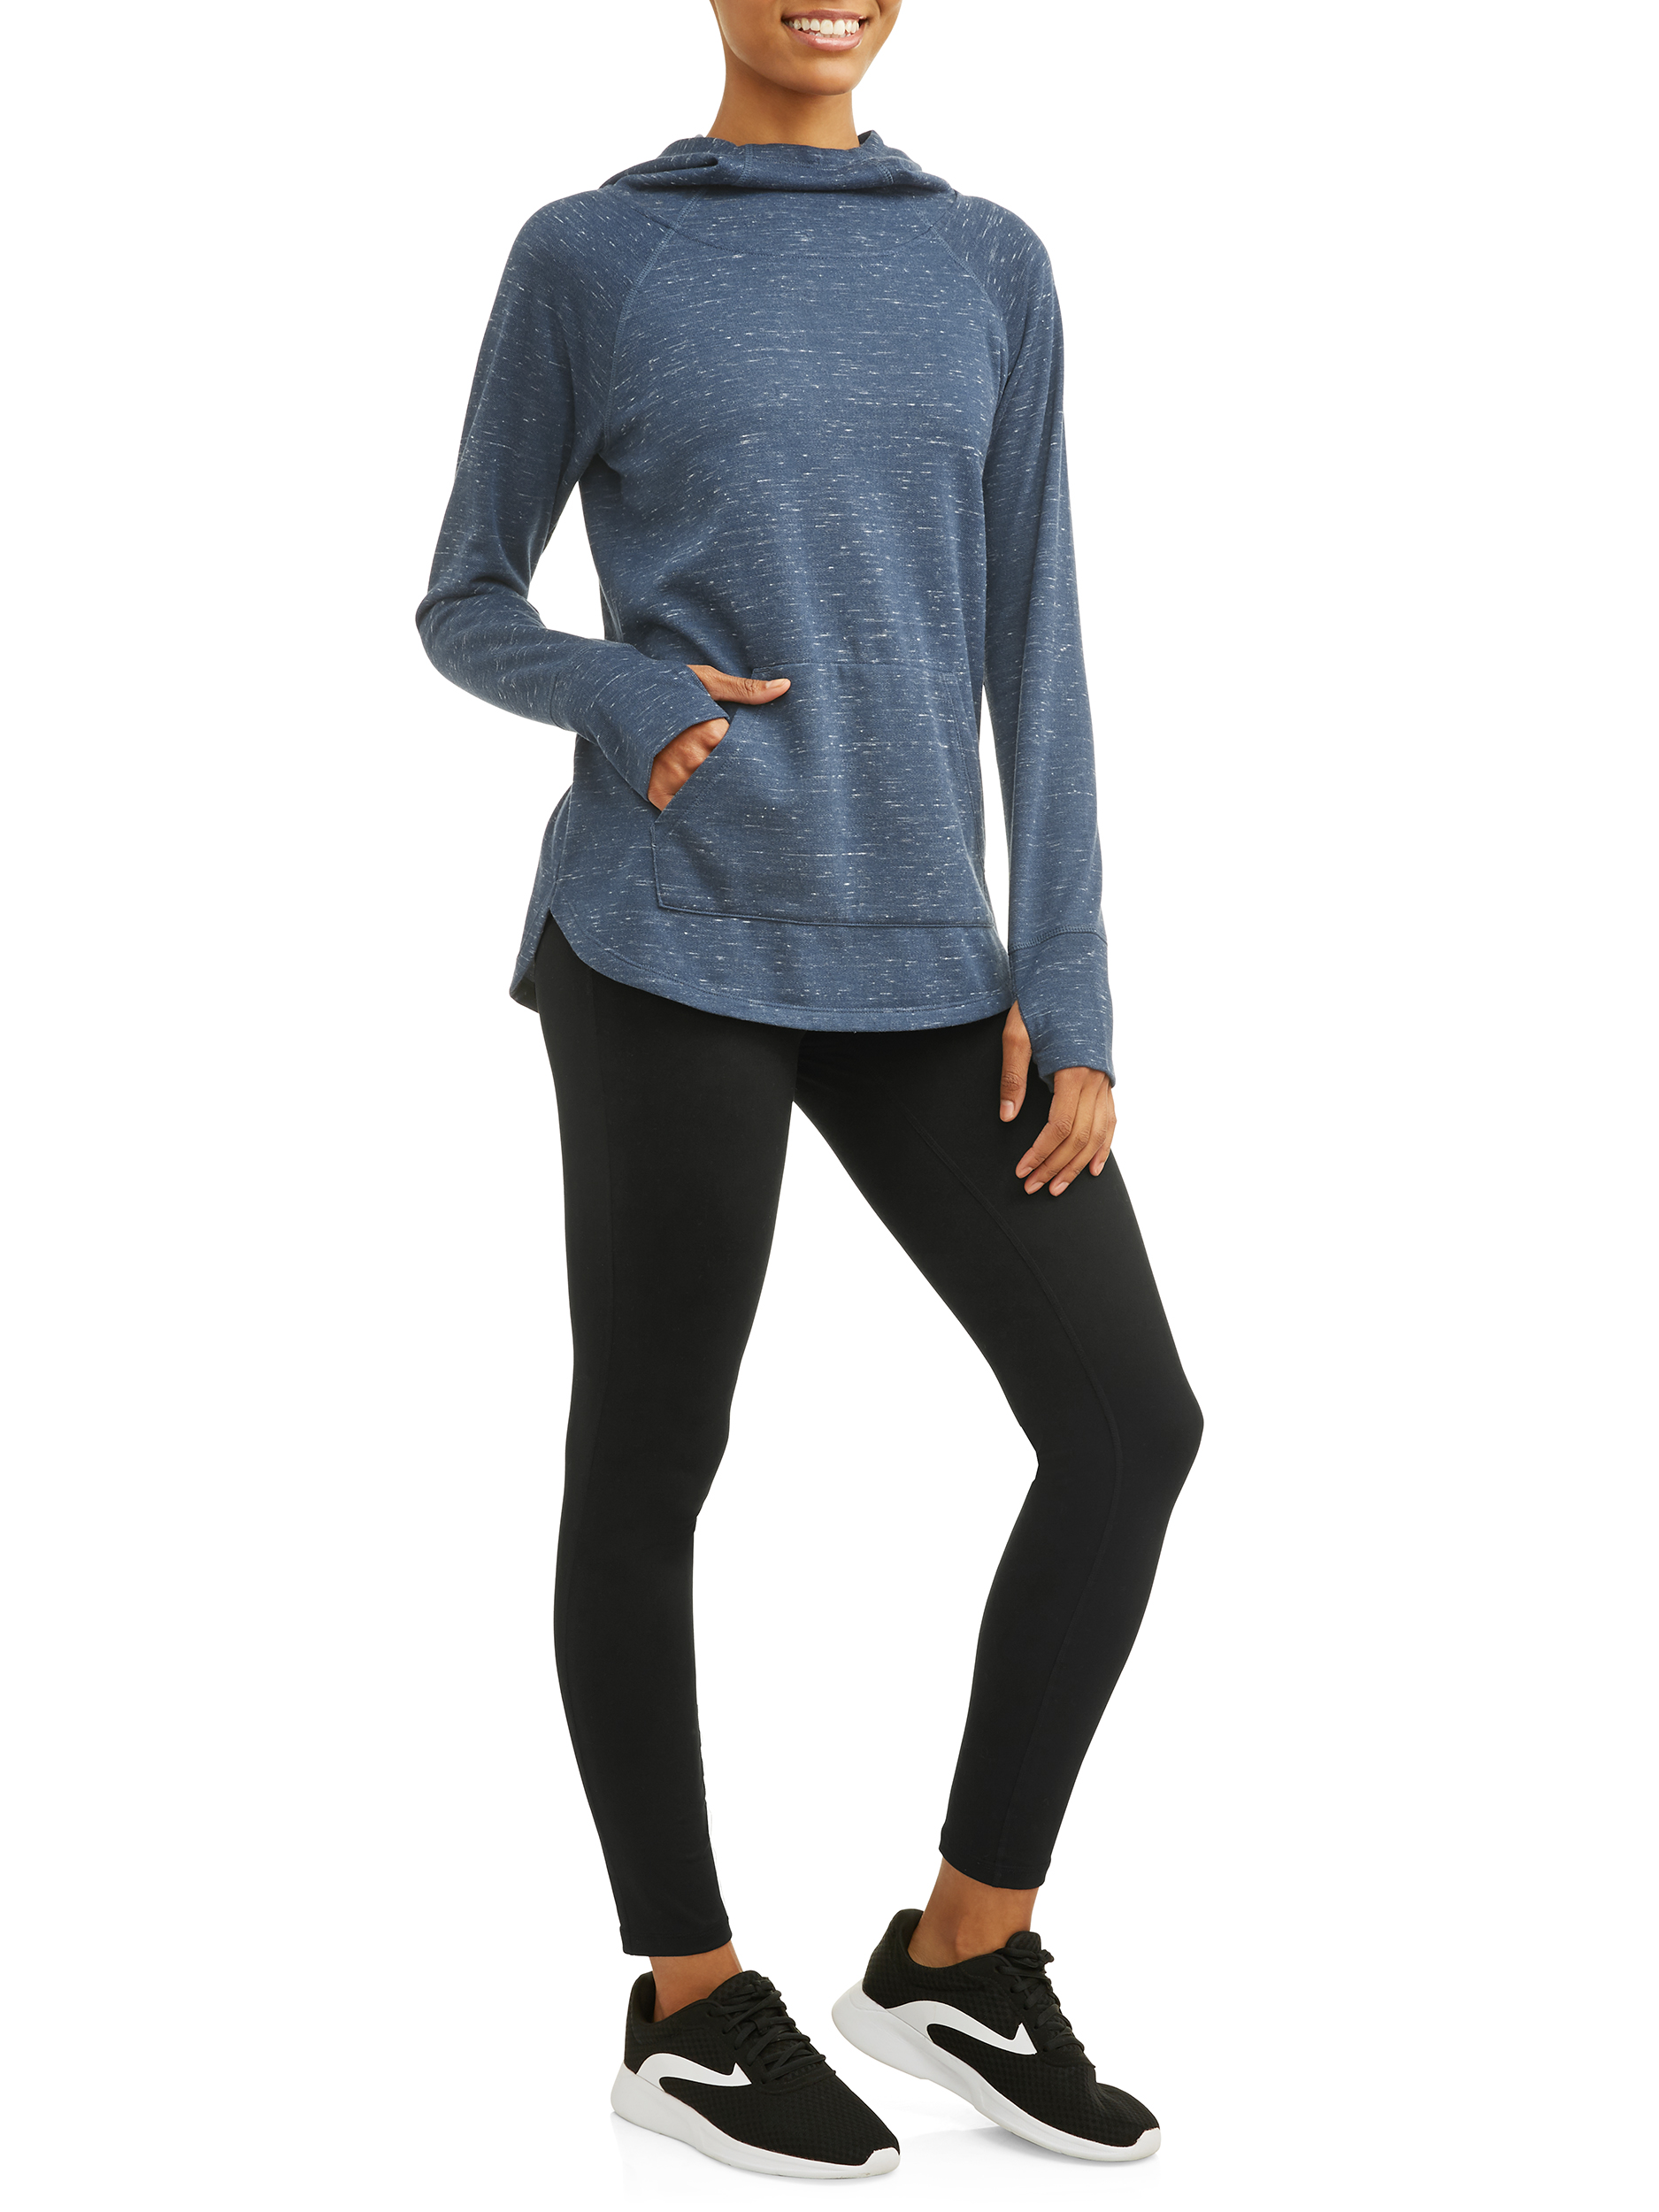 1bff10f30 Athletic Works - Athletic Works Women's Active Soft Fleece Hoodie & Lux  Workout Legging Gift Set - Walmart.com